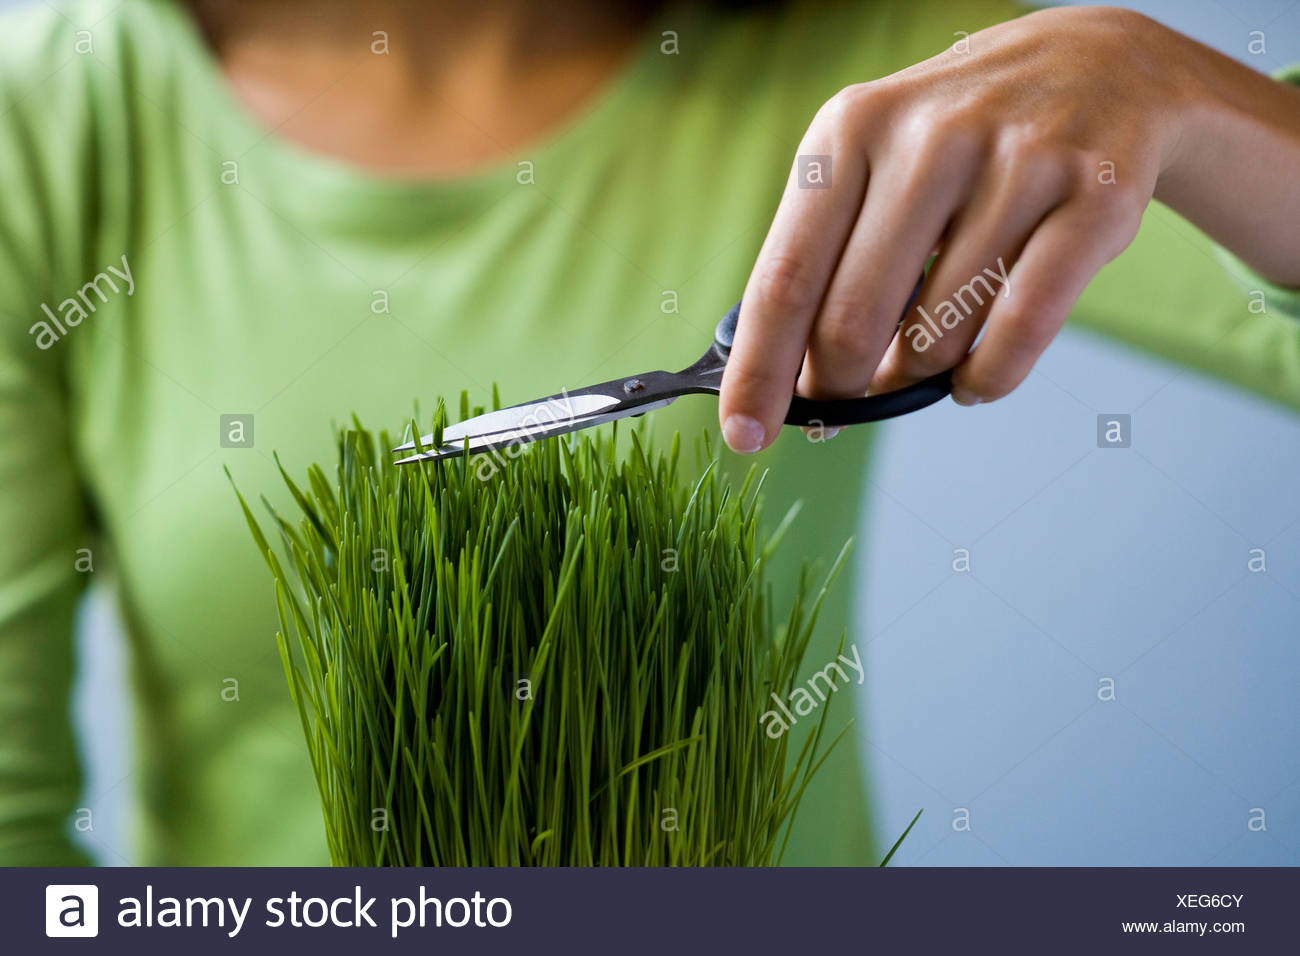 Woman trimming grass with scissors. - Stock Image